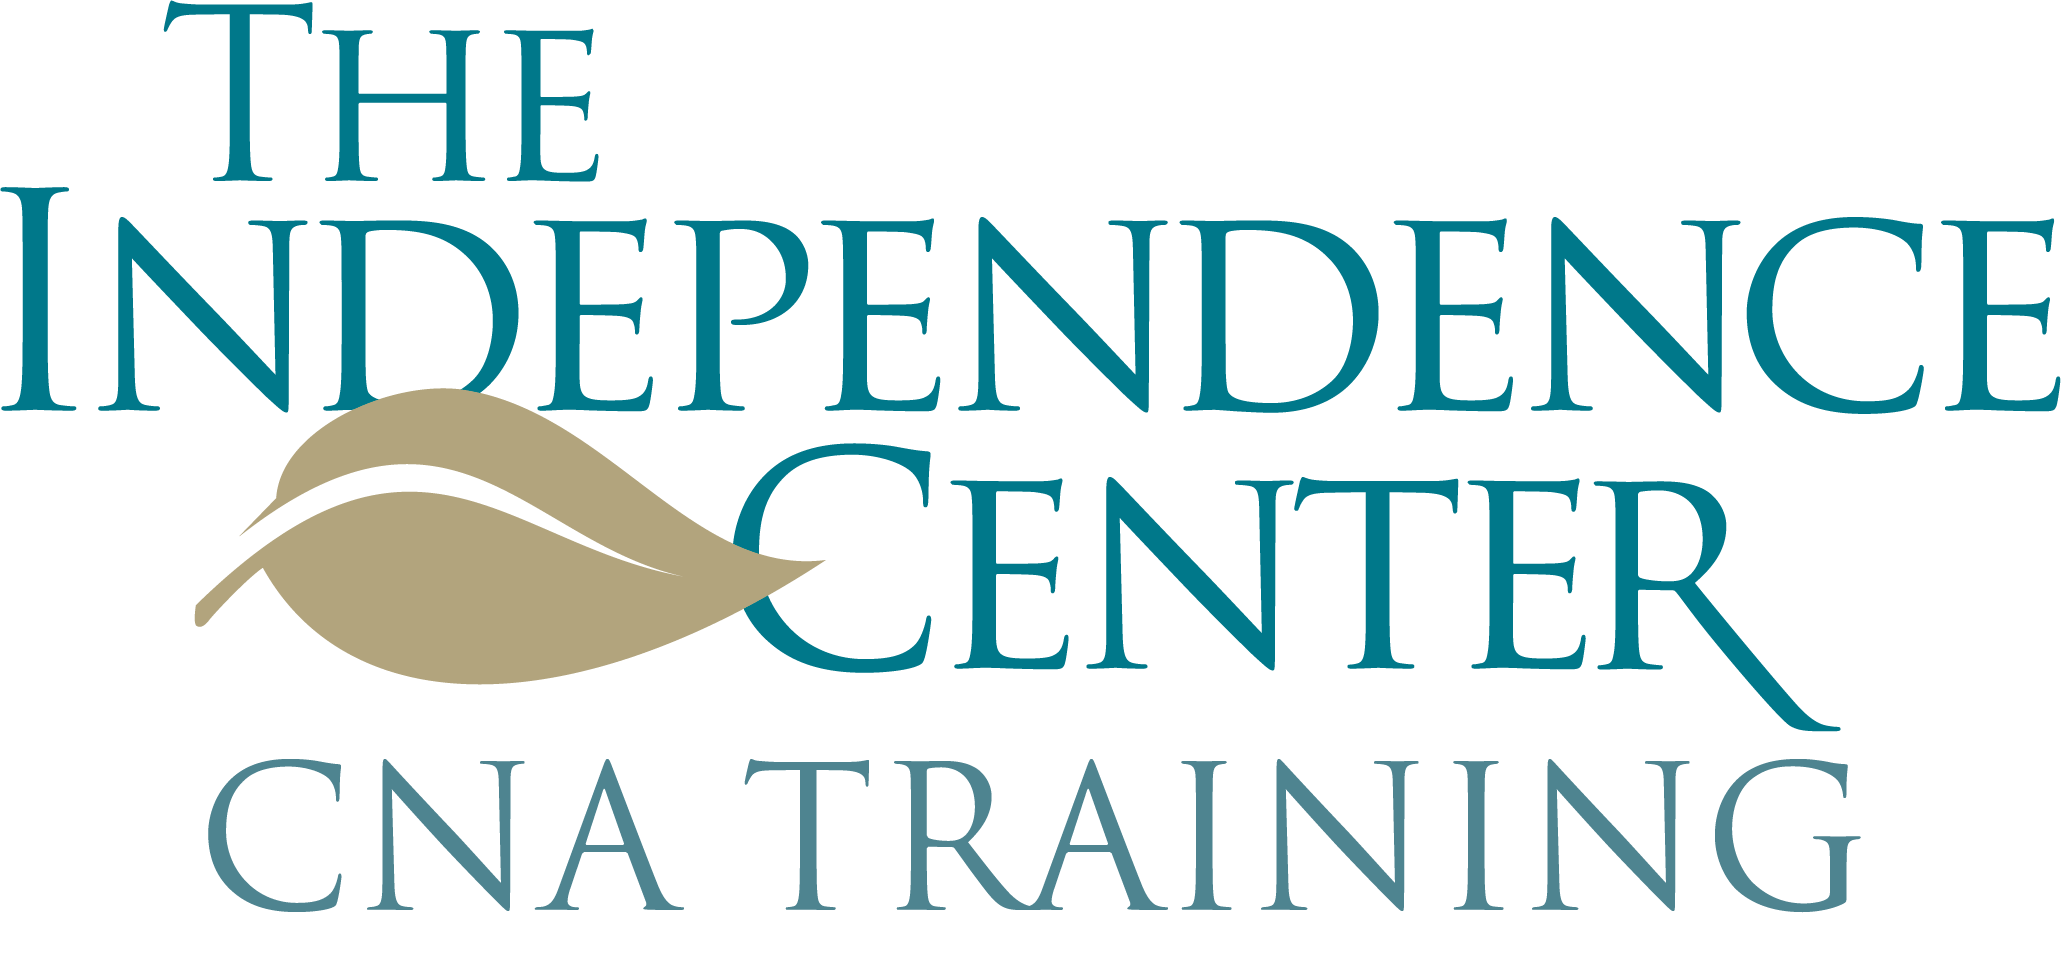 Cna training program independence center cna training program logo xflitez Images